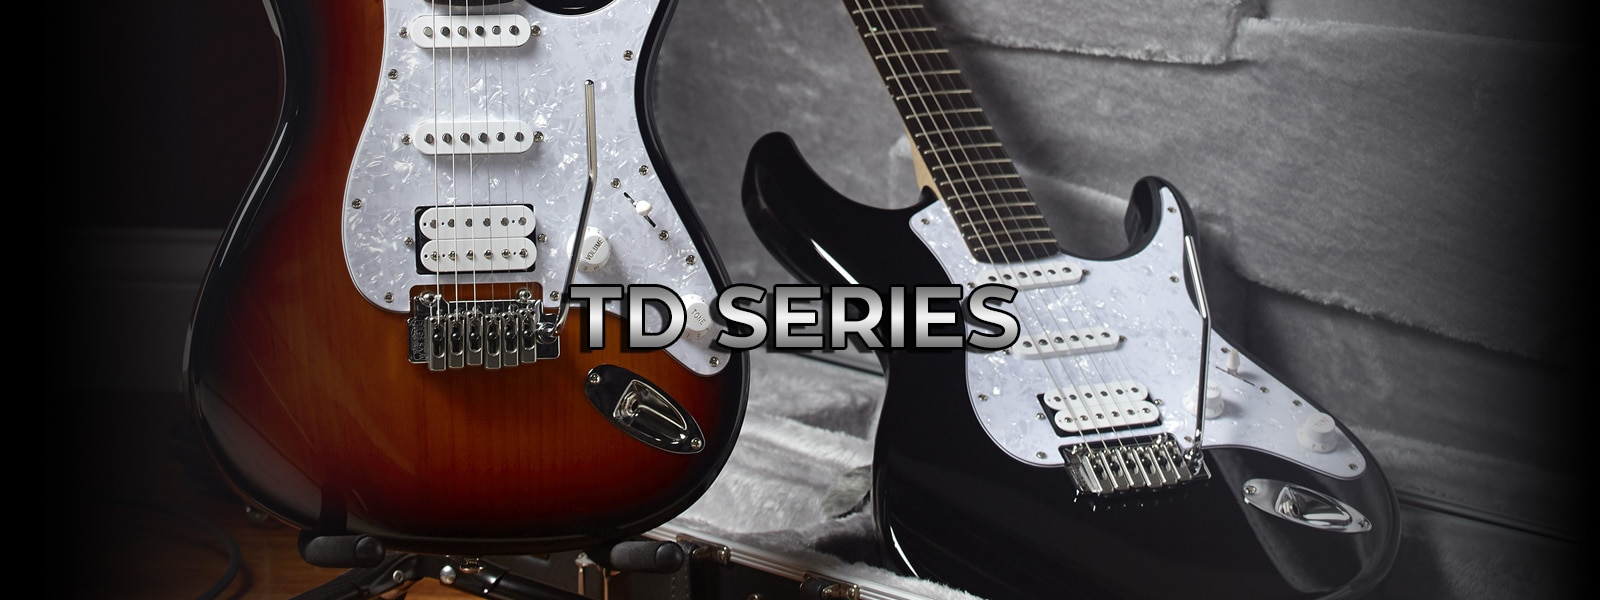 Mitchell TD series electric guitar